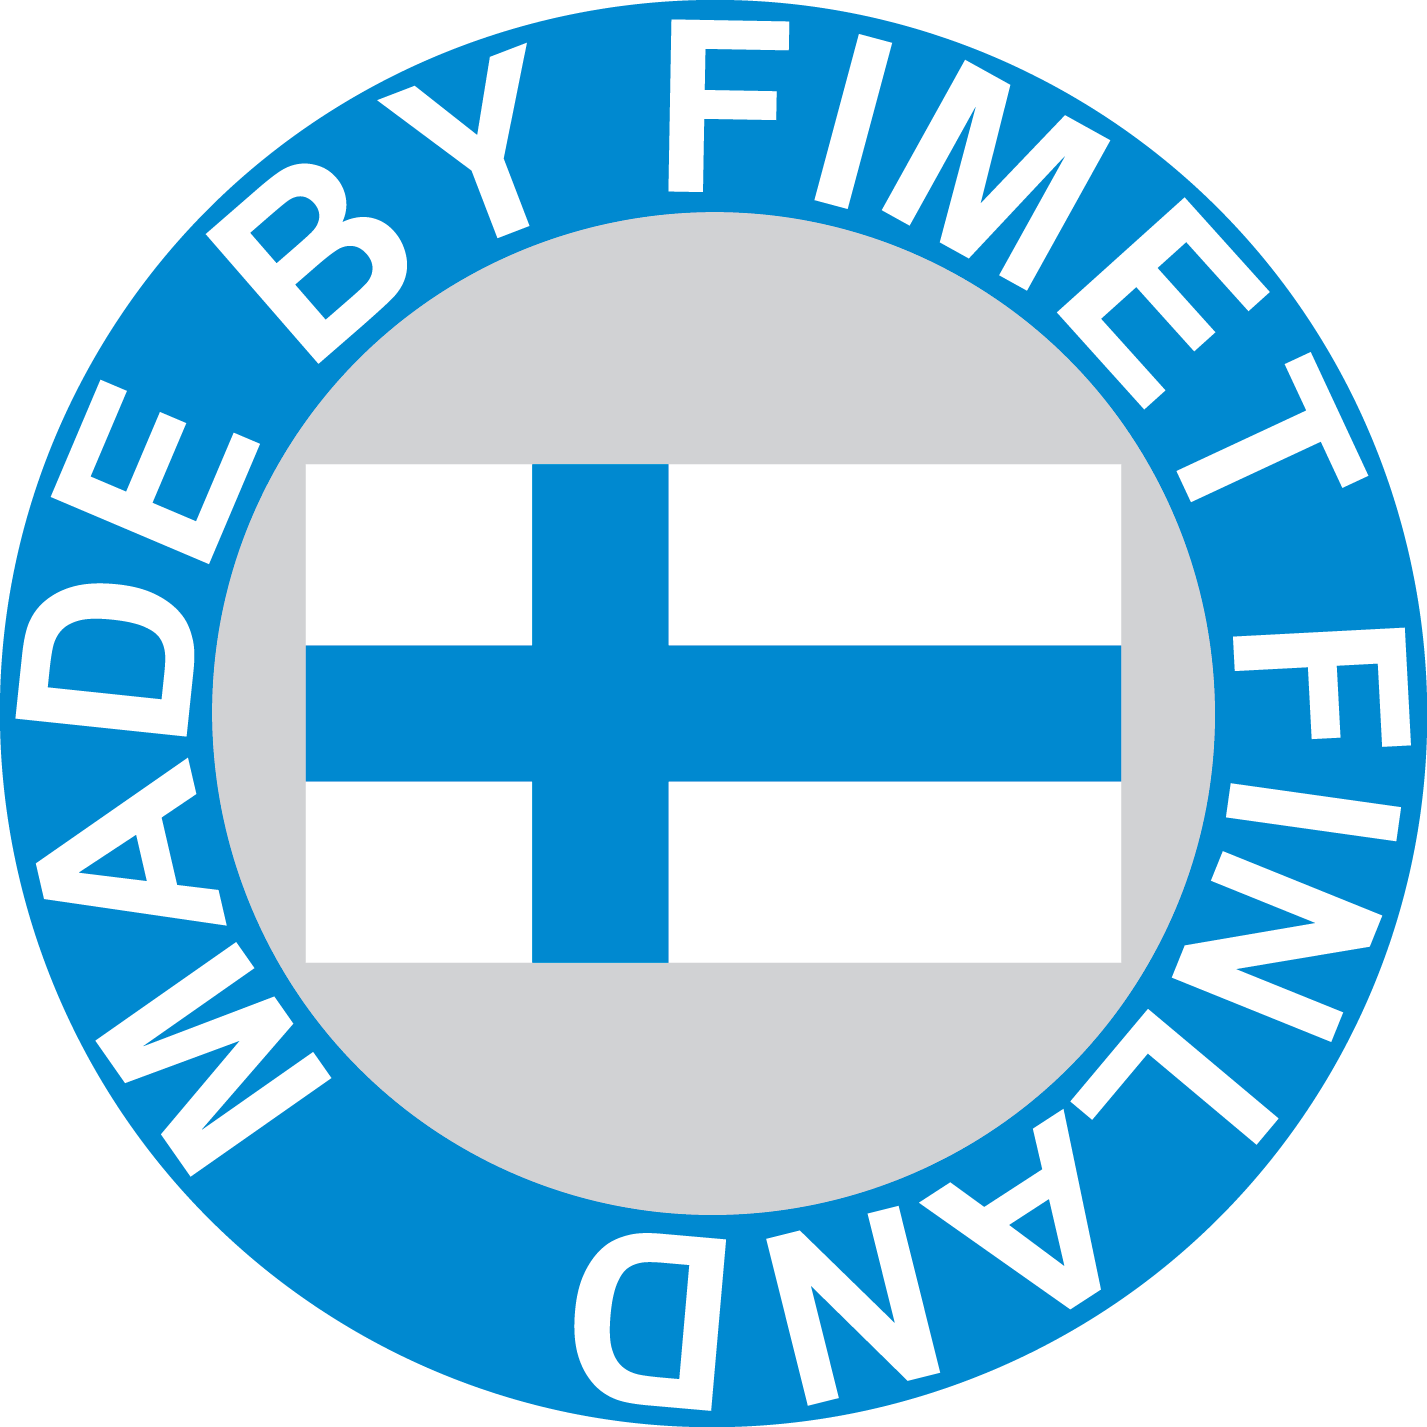 Made by Fimet finland